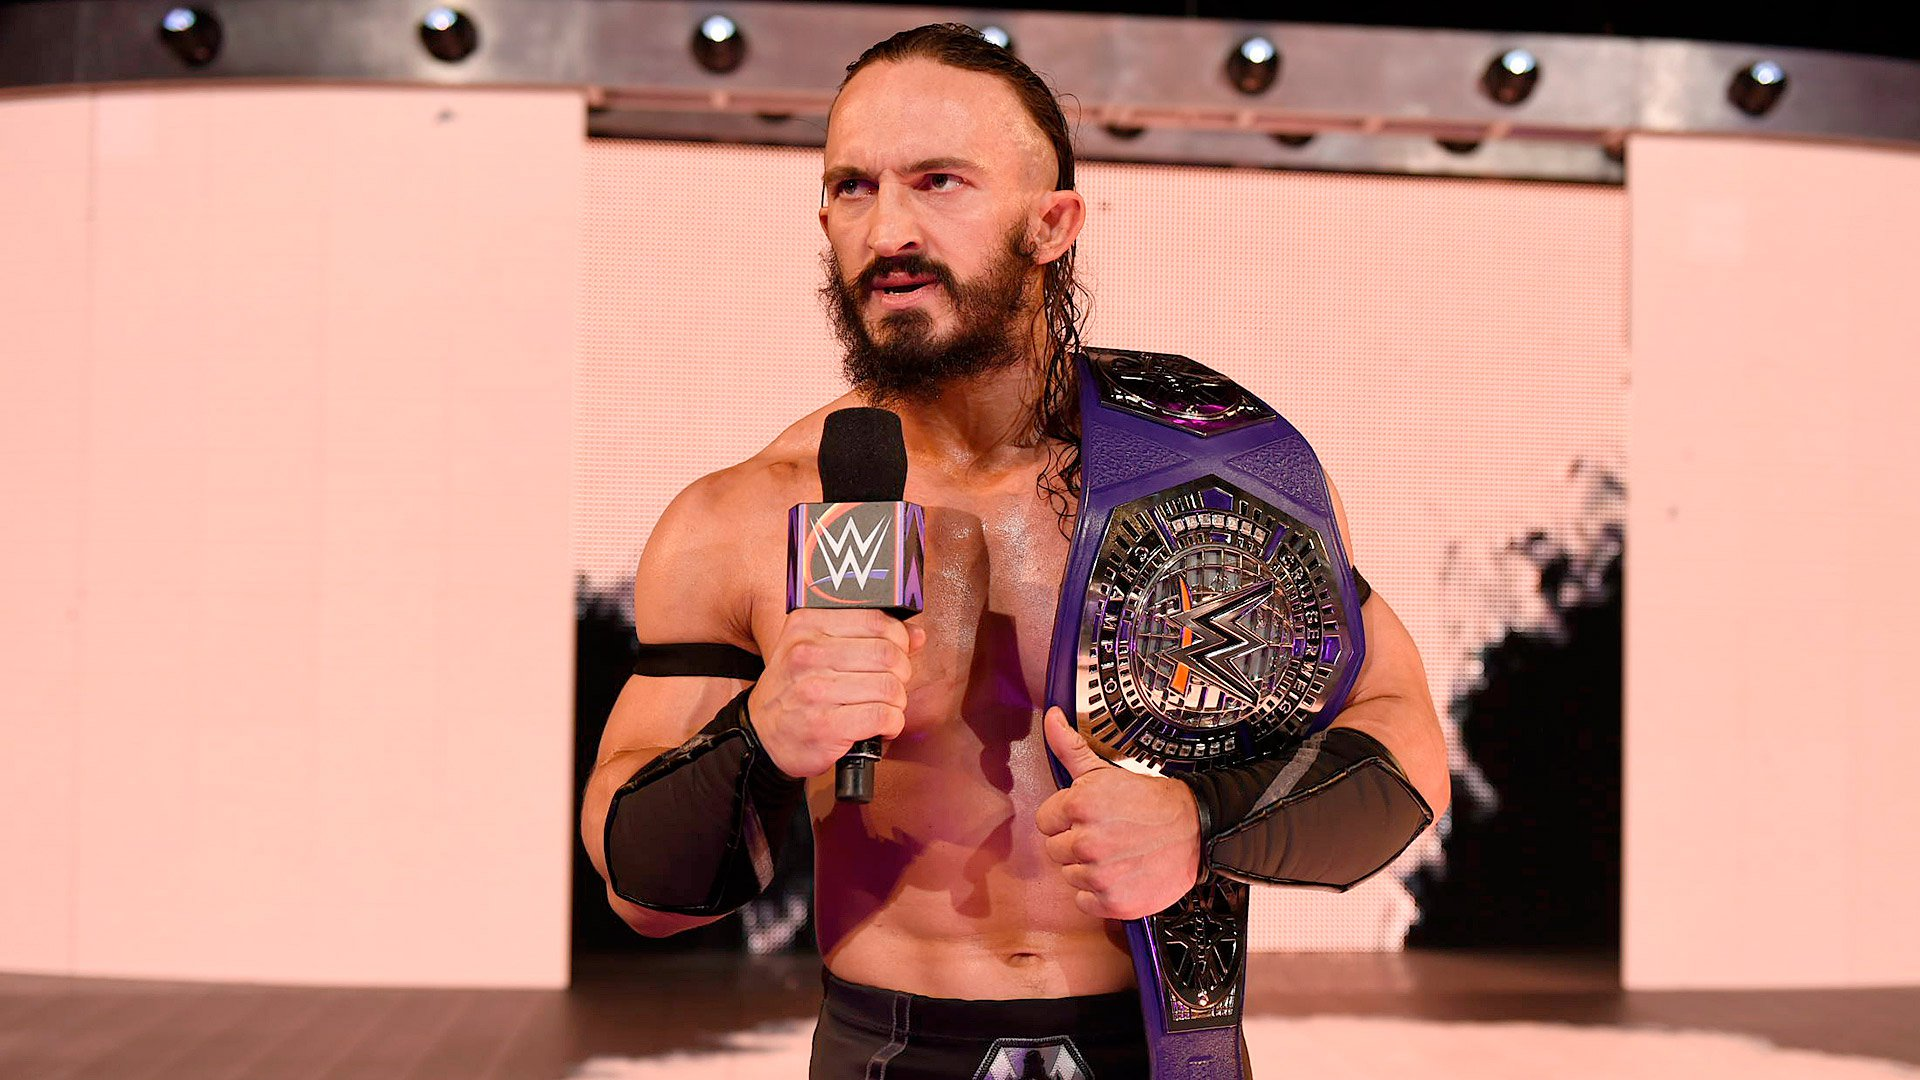 The Week in Wrestling: The Latest on Neville's Situation and the Bullet Club's Feud With WWE